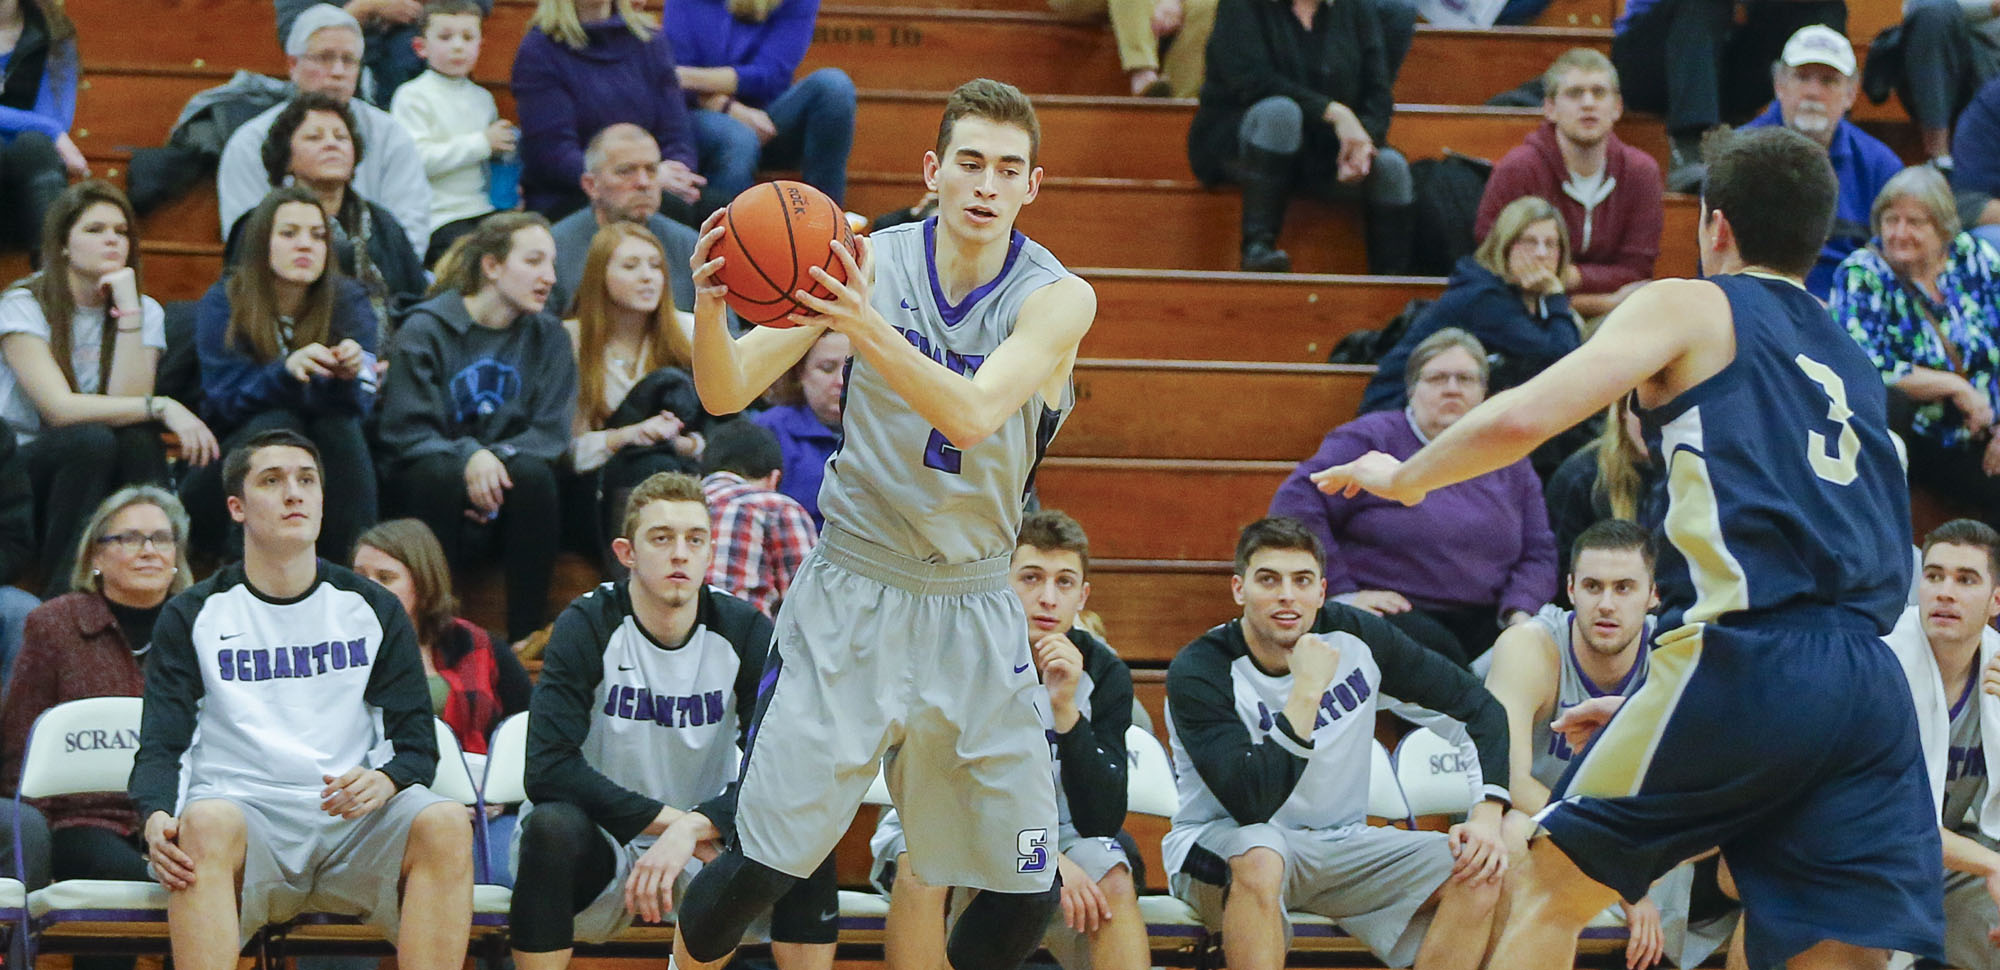 Junior guard Ethan Danzig hit six 3-pointers on his way to a team-high 22 points on Friday night.